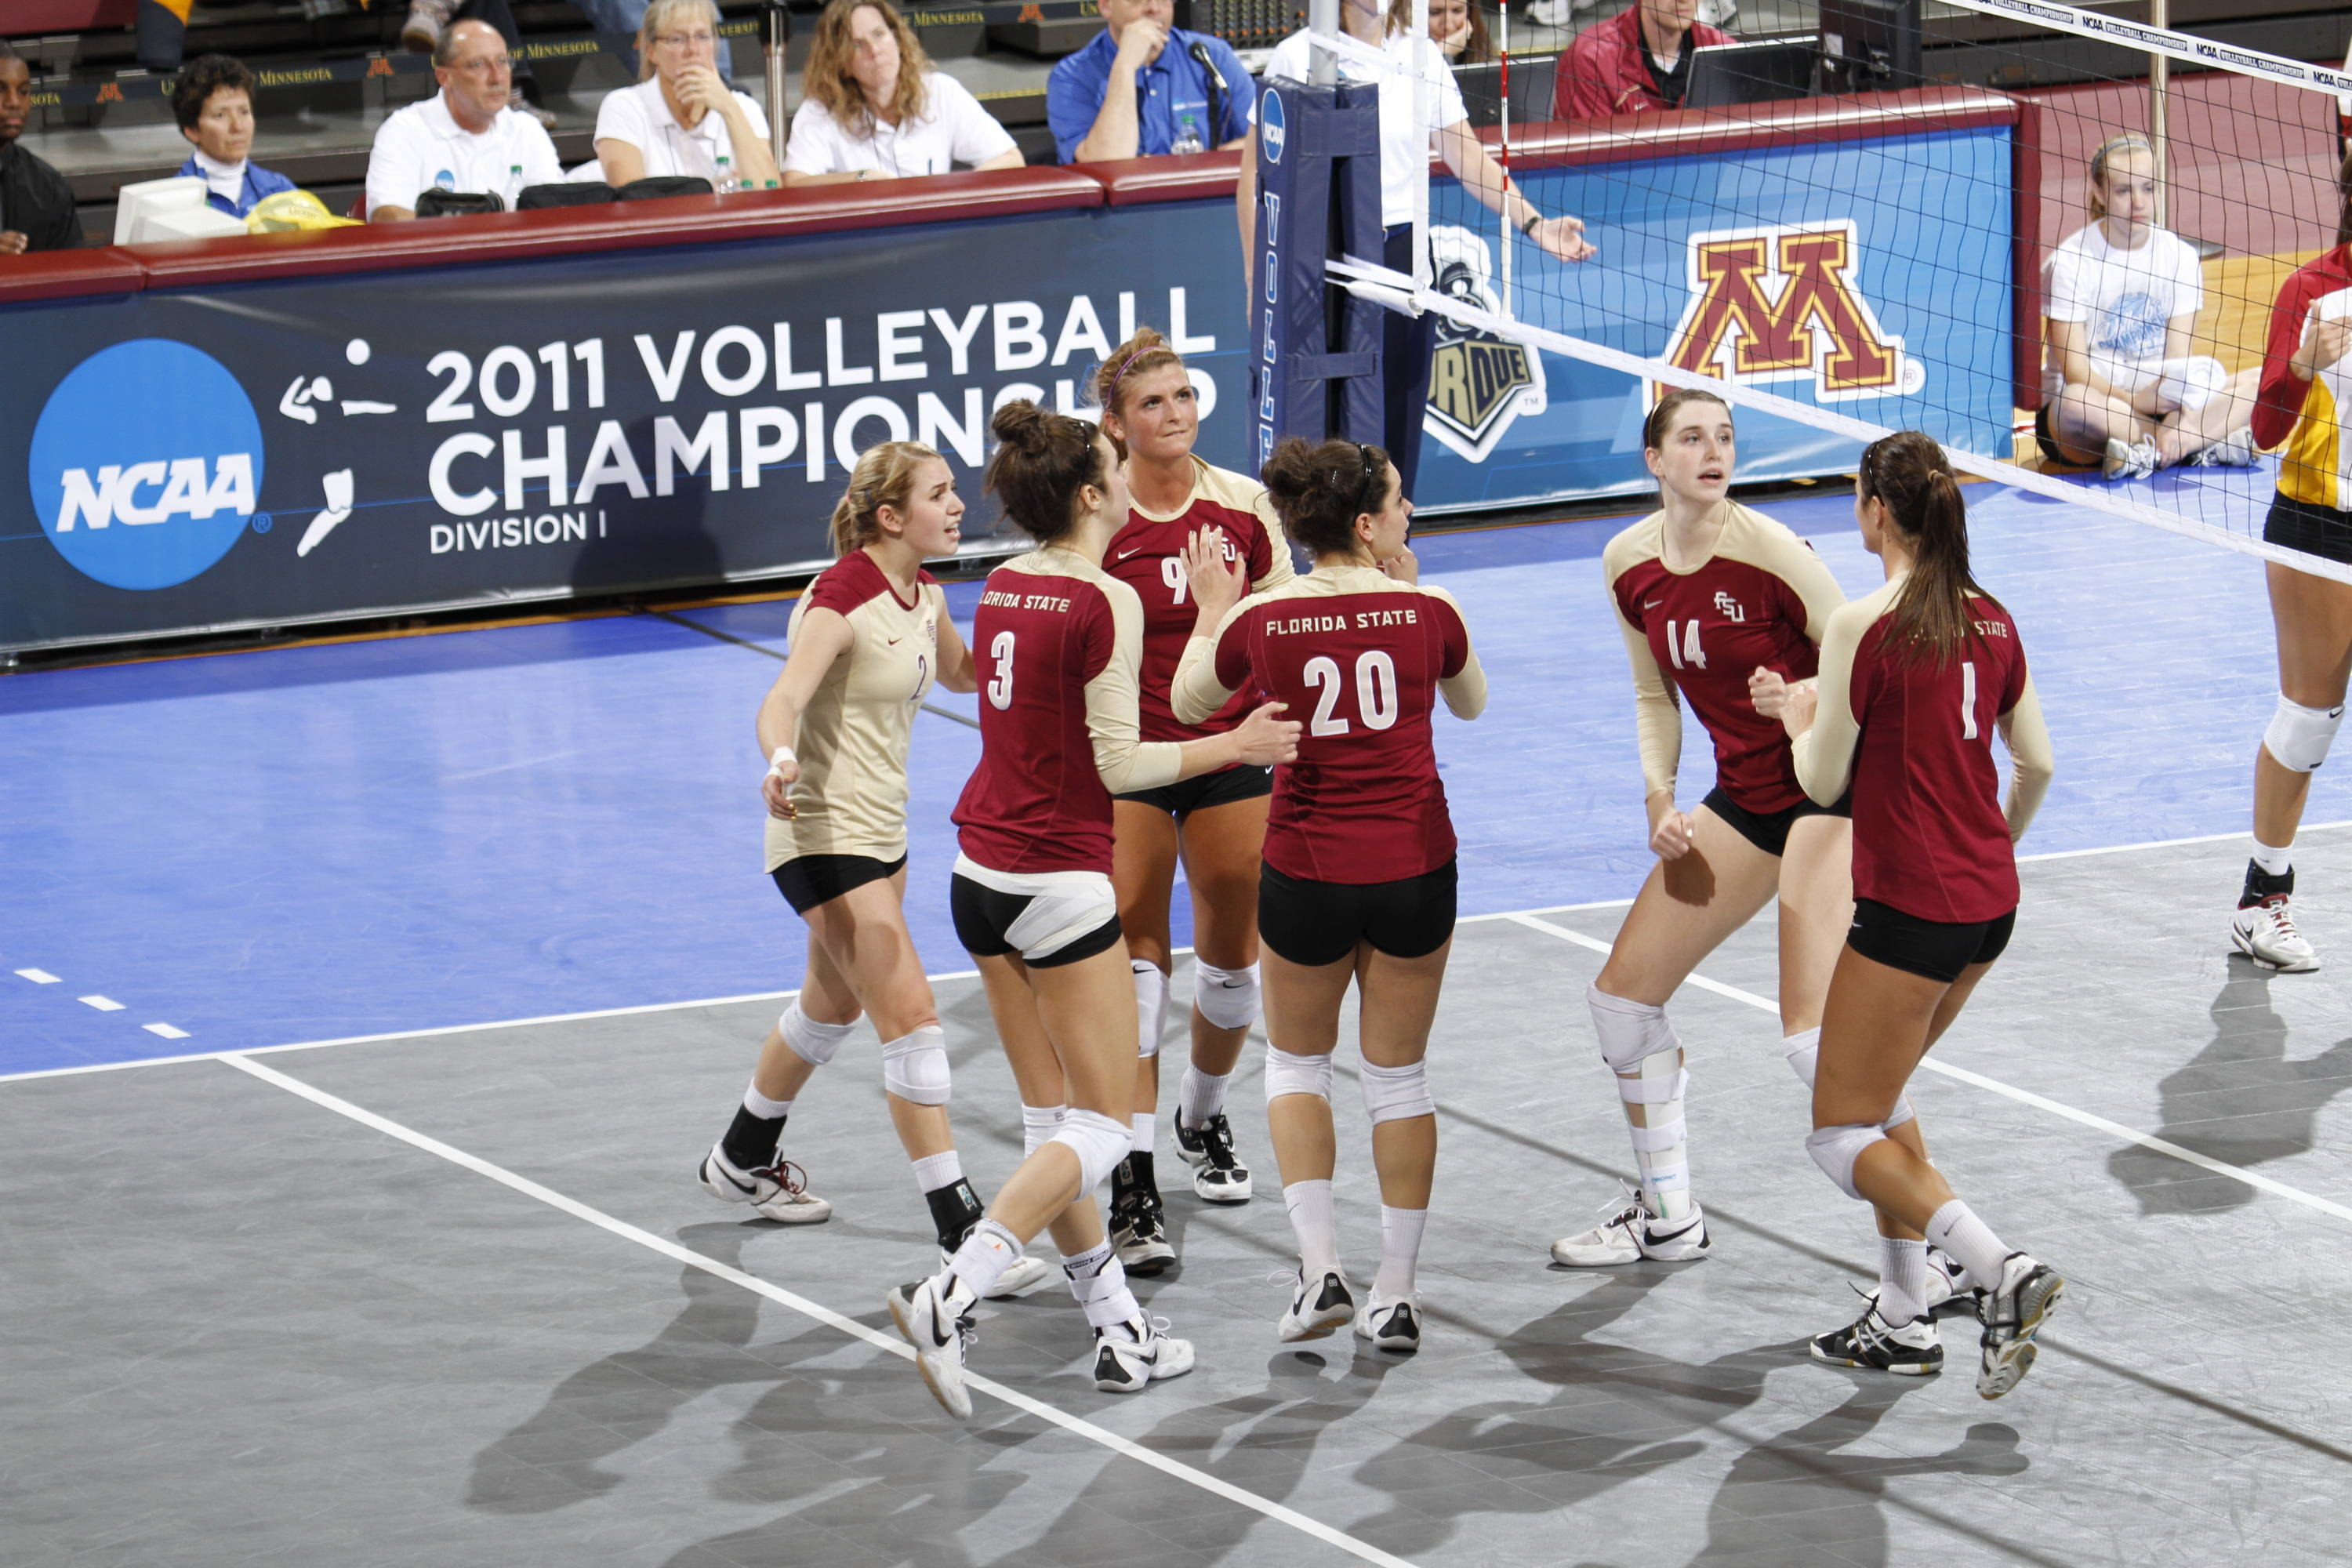 FSU vs. Iowa State, Regional Finals in Minneapolis